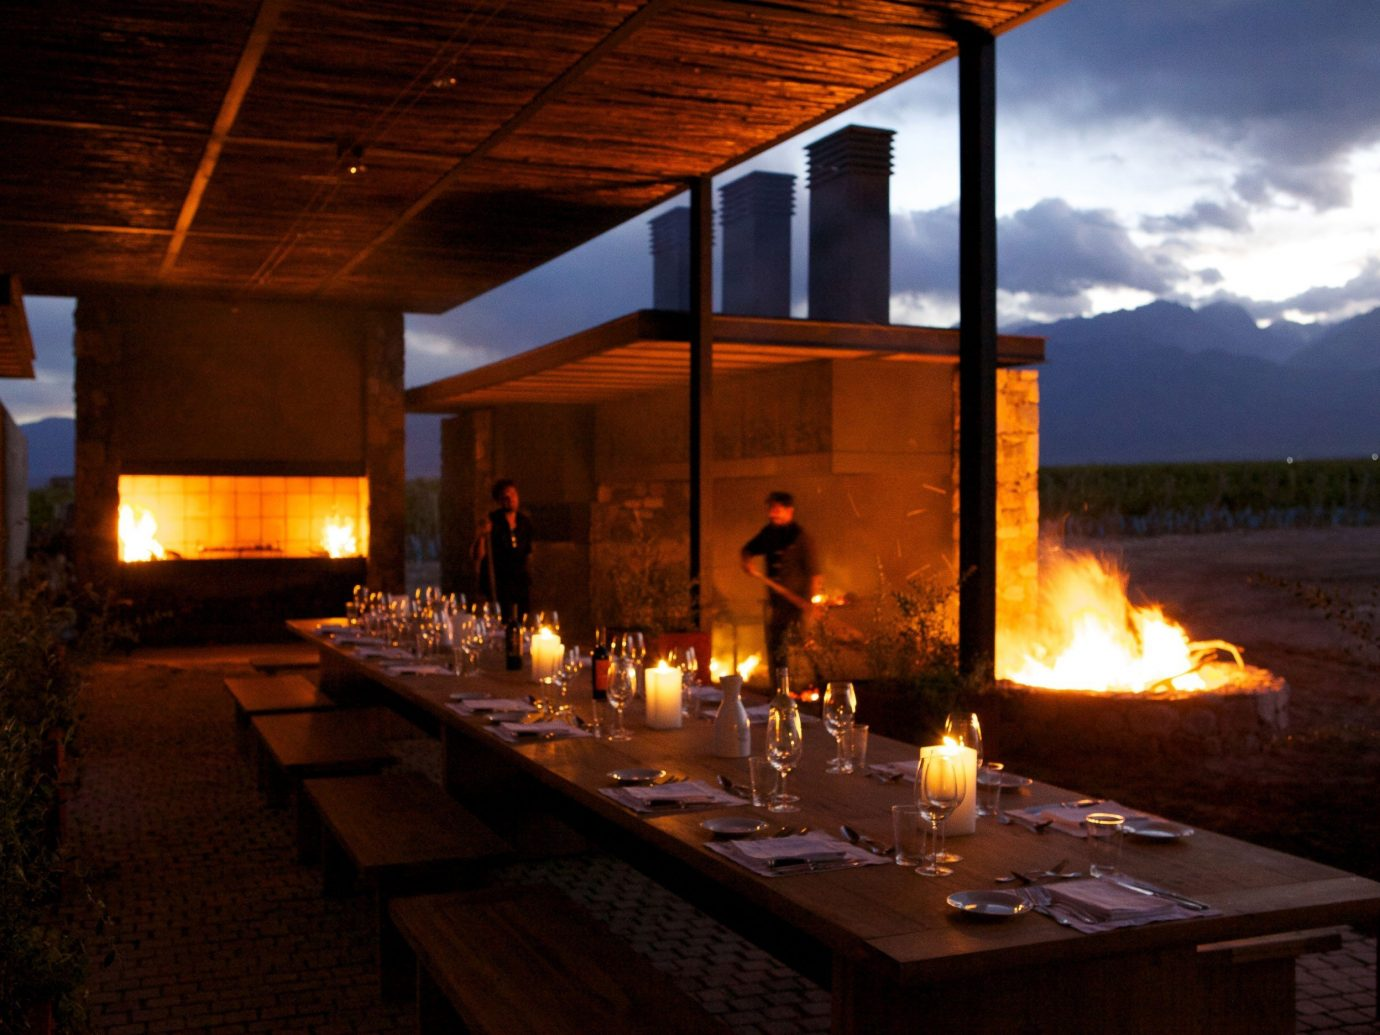 Food + Drink lighting restaurant fire dark Island